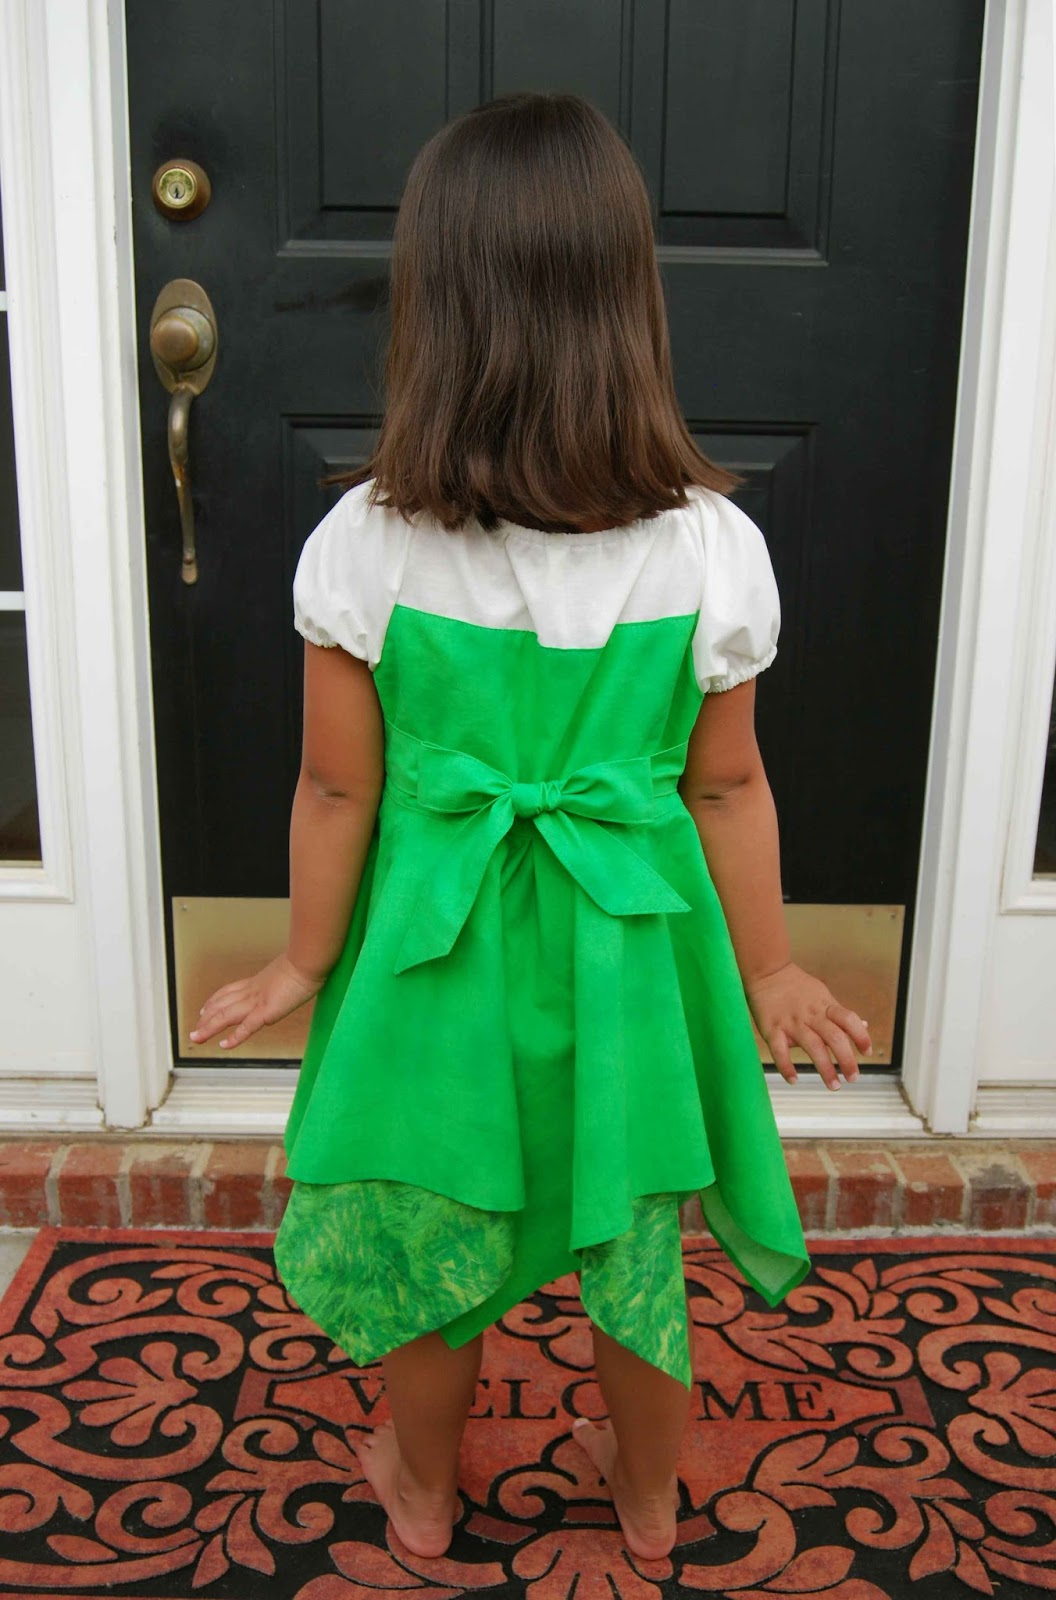 ... help to cinch in the dress and make for easy adjustments for girls of all sizes. Speaking of sizes the Tinkerbell pattern comes in sizes 6m- size 8. & All Things Katy!: Sewing Pattern Testing- Made for Mermaids ...